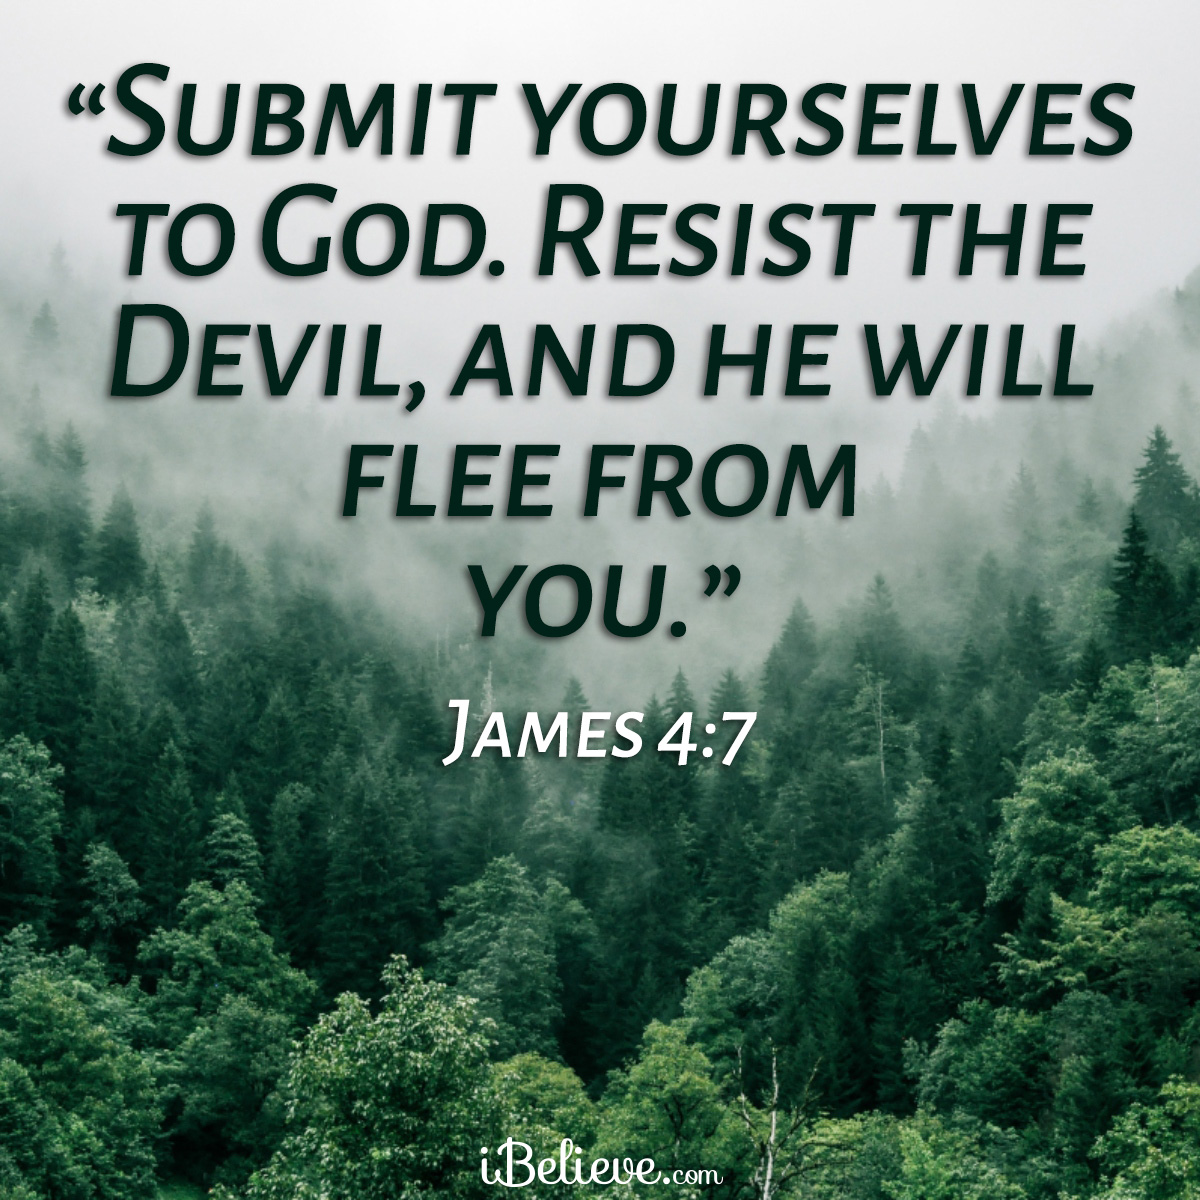 James 4:7 inspirational image